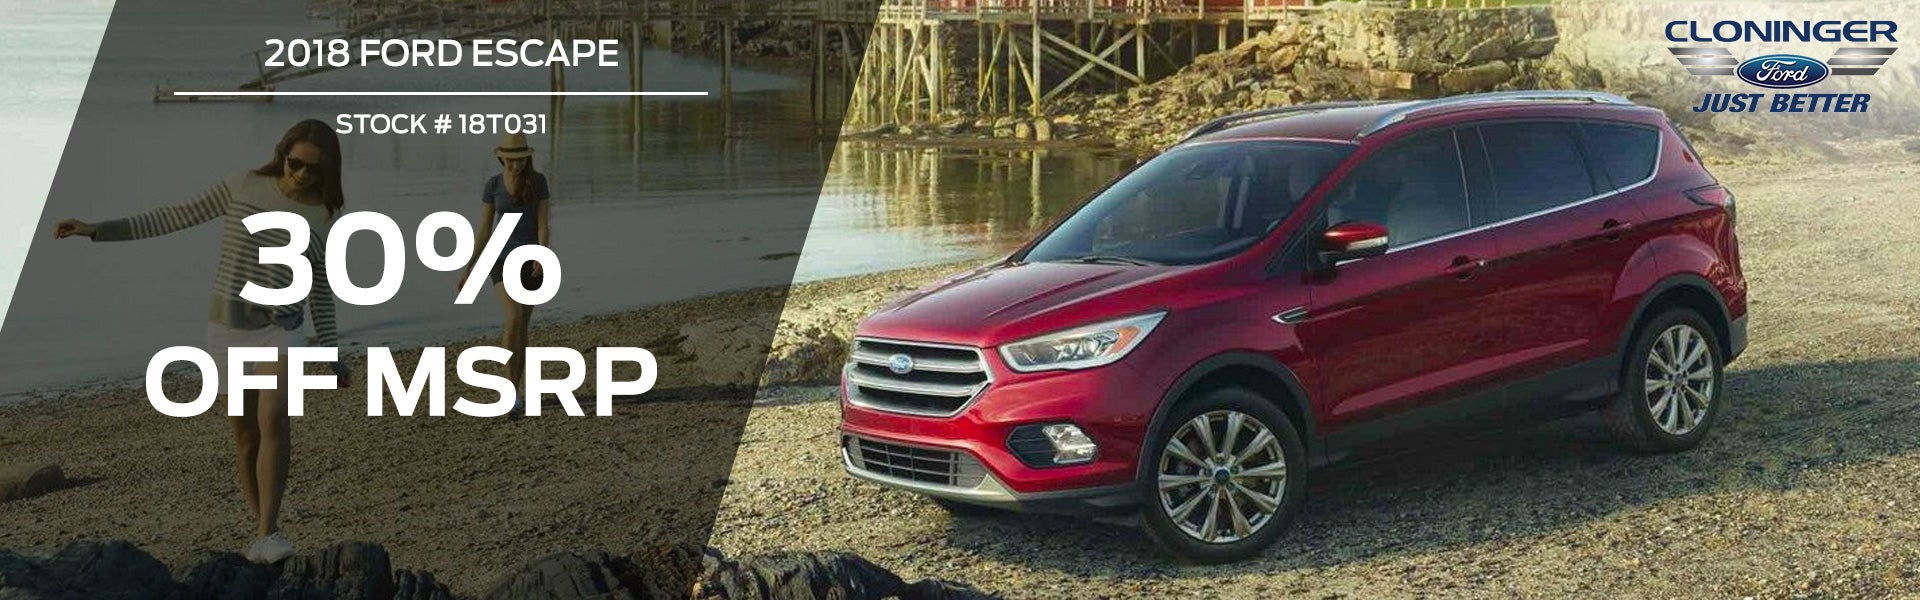 2018 Ford Escape Cloninger Ford Of Hickory Specials Hickory Nc